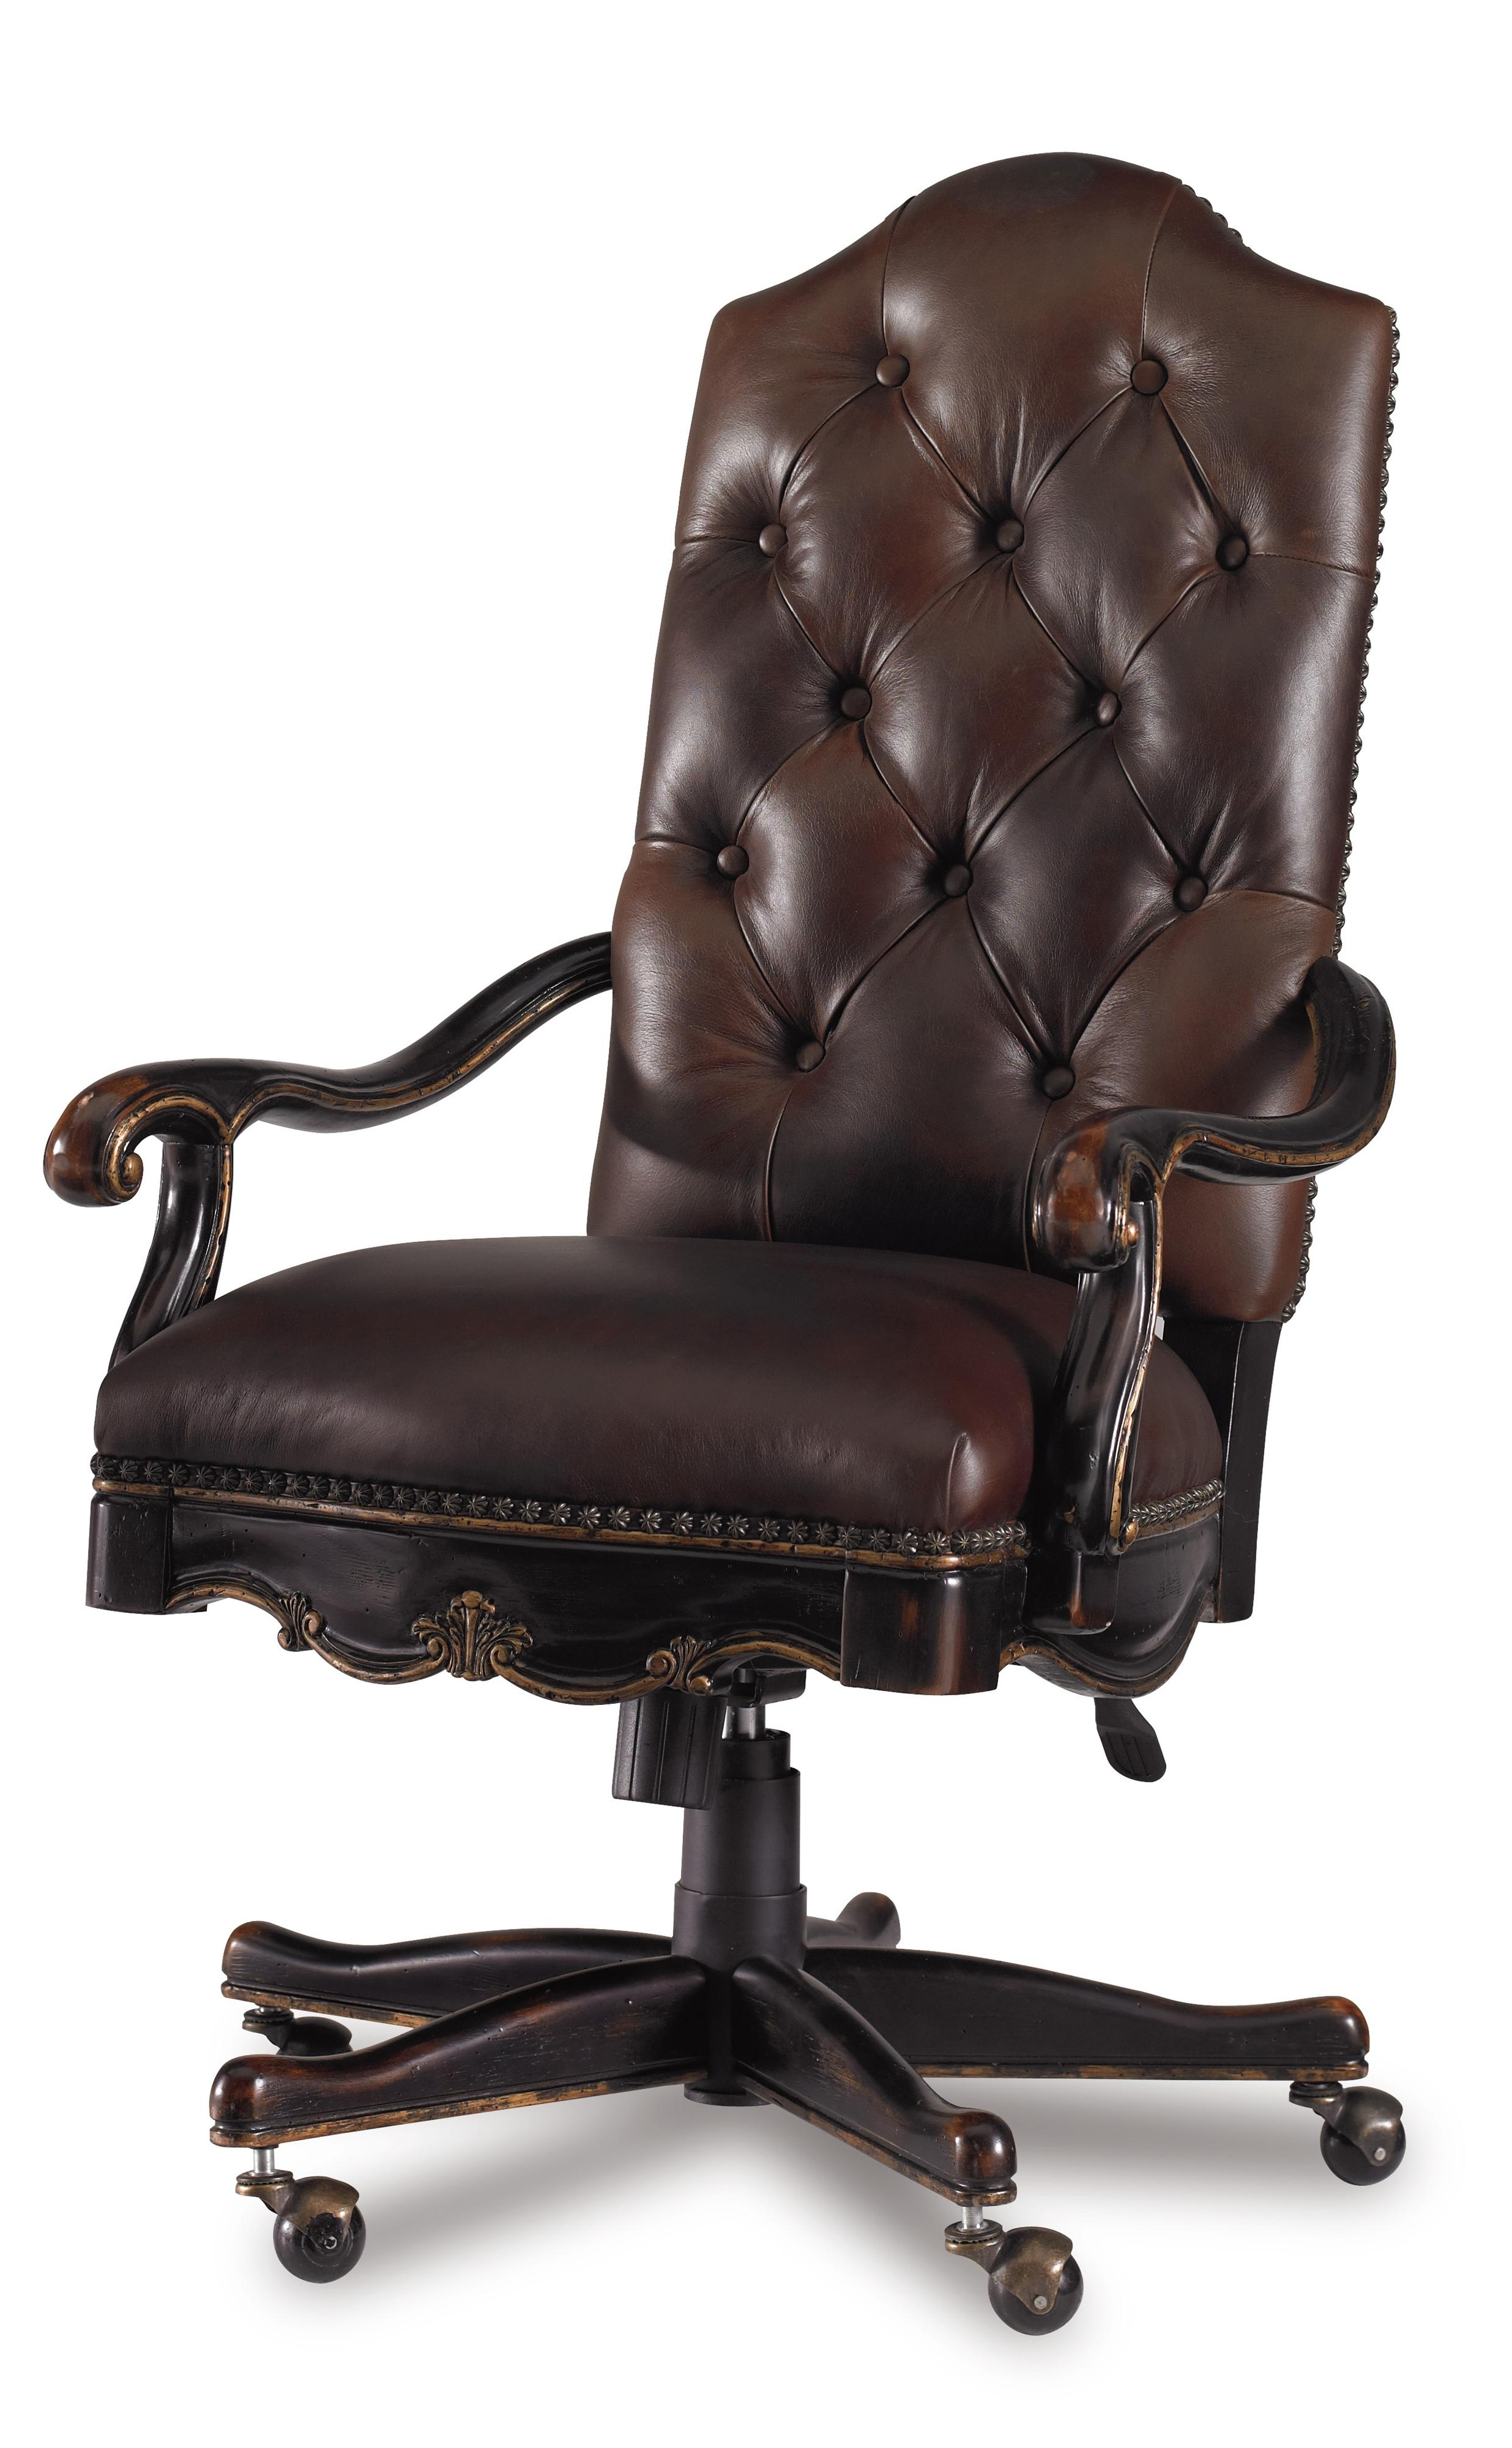 Hooker Furniture Grandover Tufted Leather Executive Office Chair Regarding Most Up To Date Executive Office Chairs (View 19 of 20)